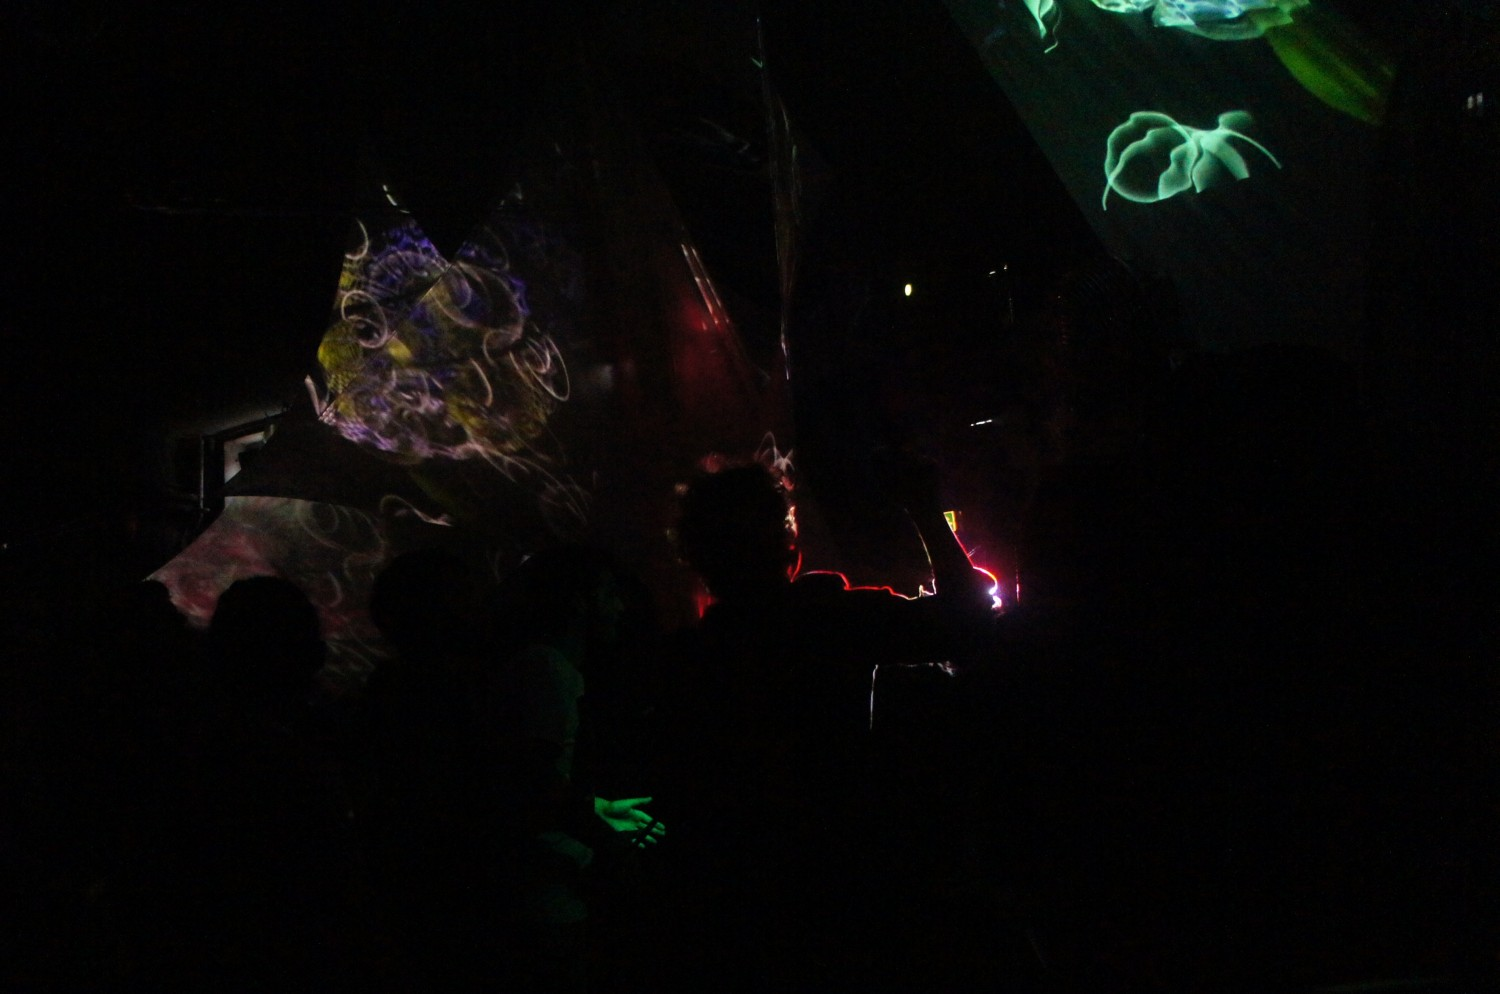 Berlin's techno scene from the inside, this time at Tempel Club.